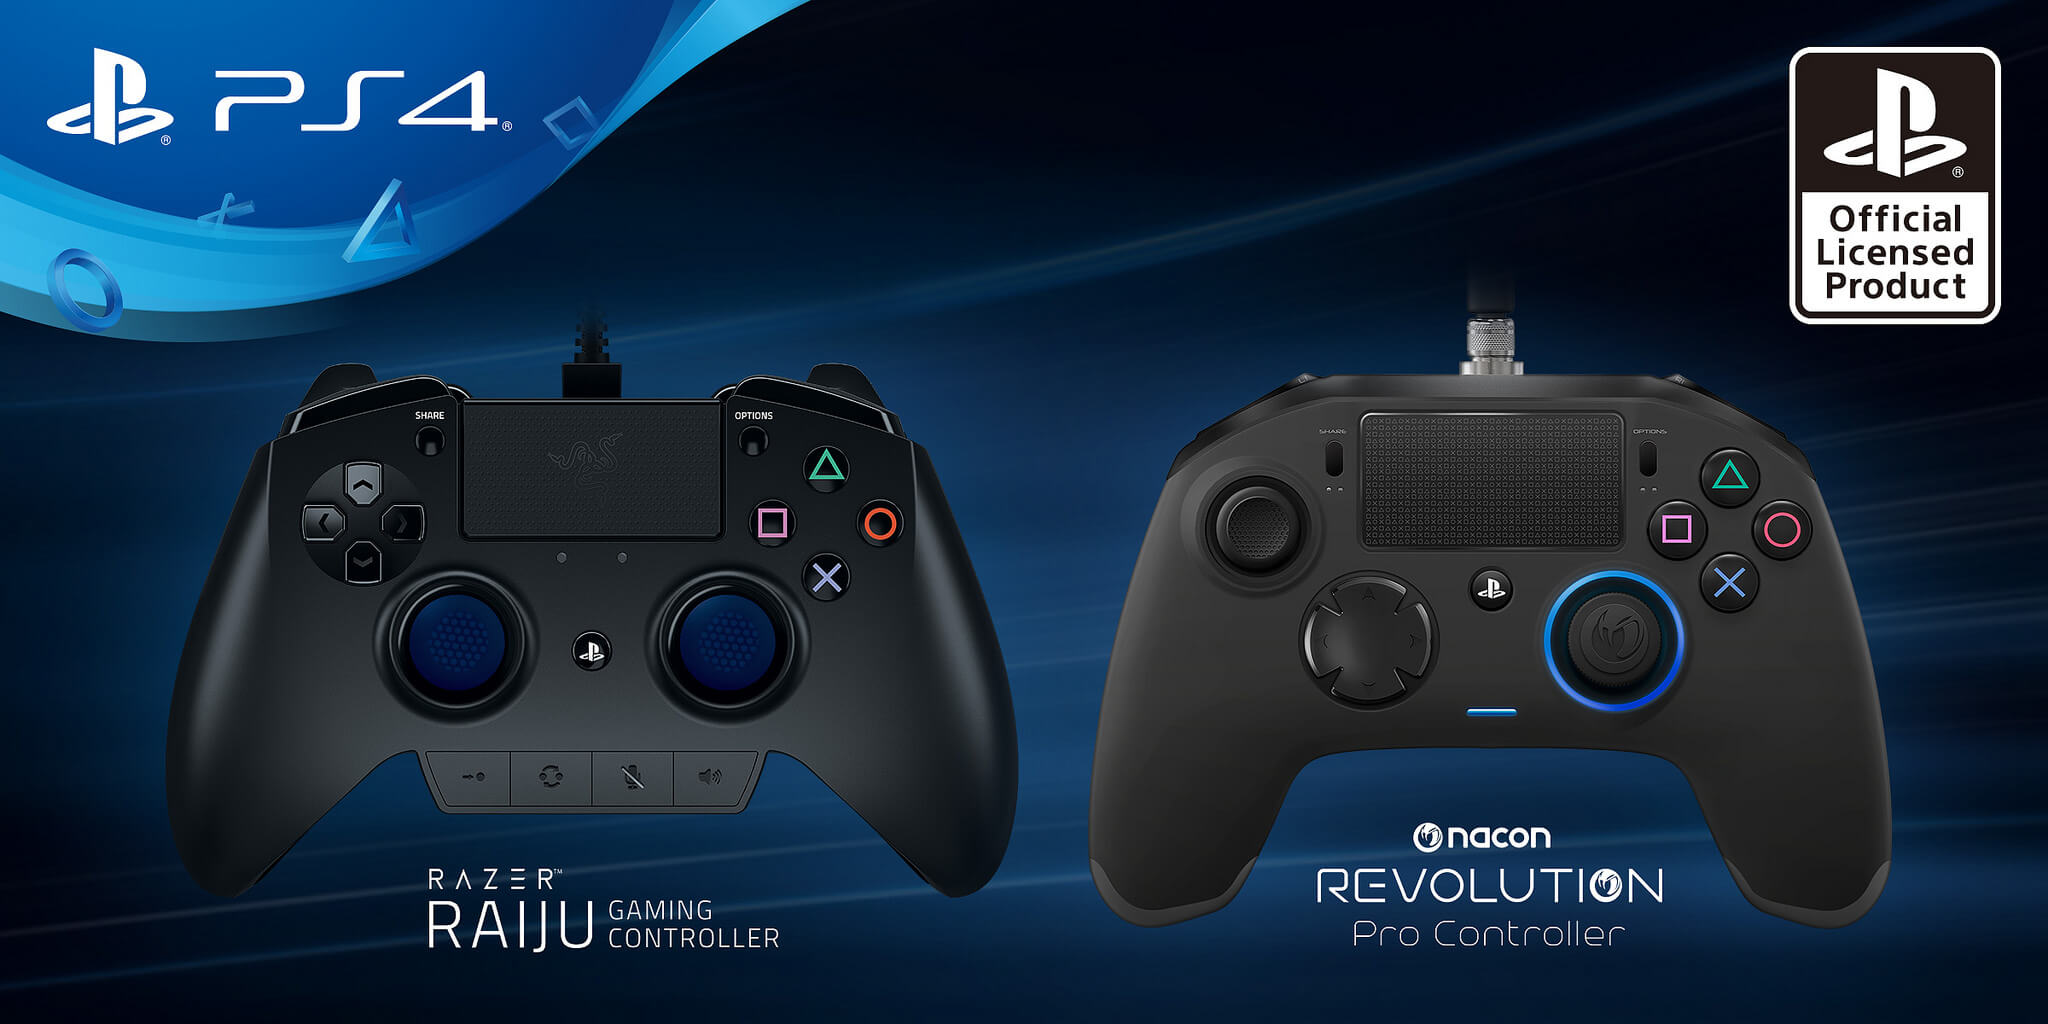 PlayStation 4 Razer and Nacon controllers.